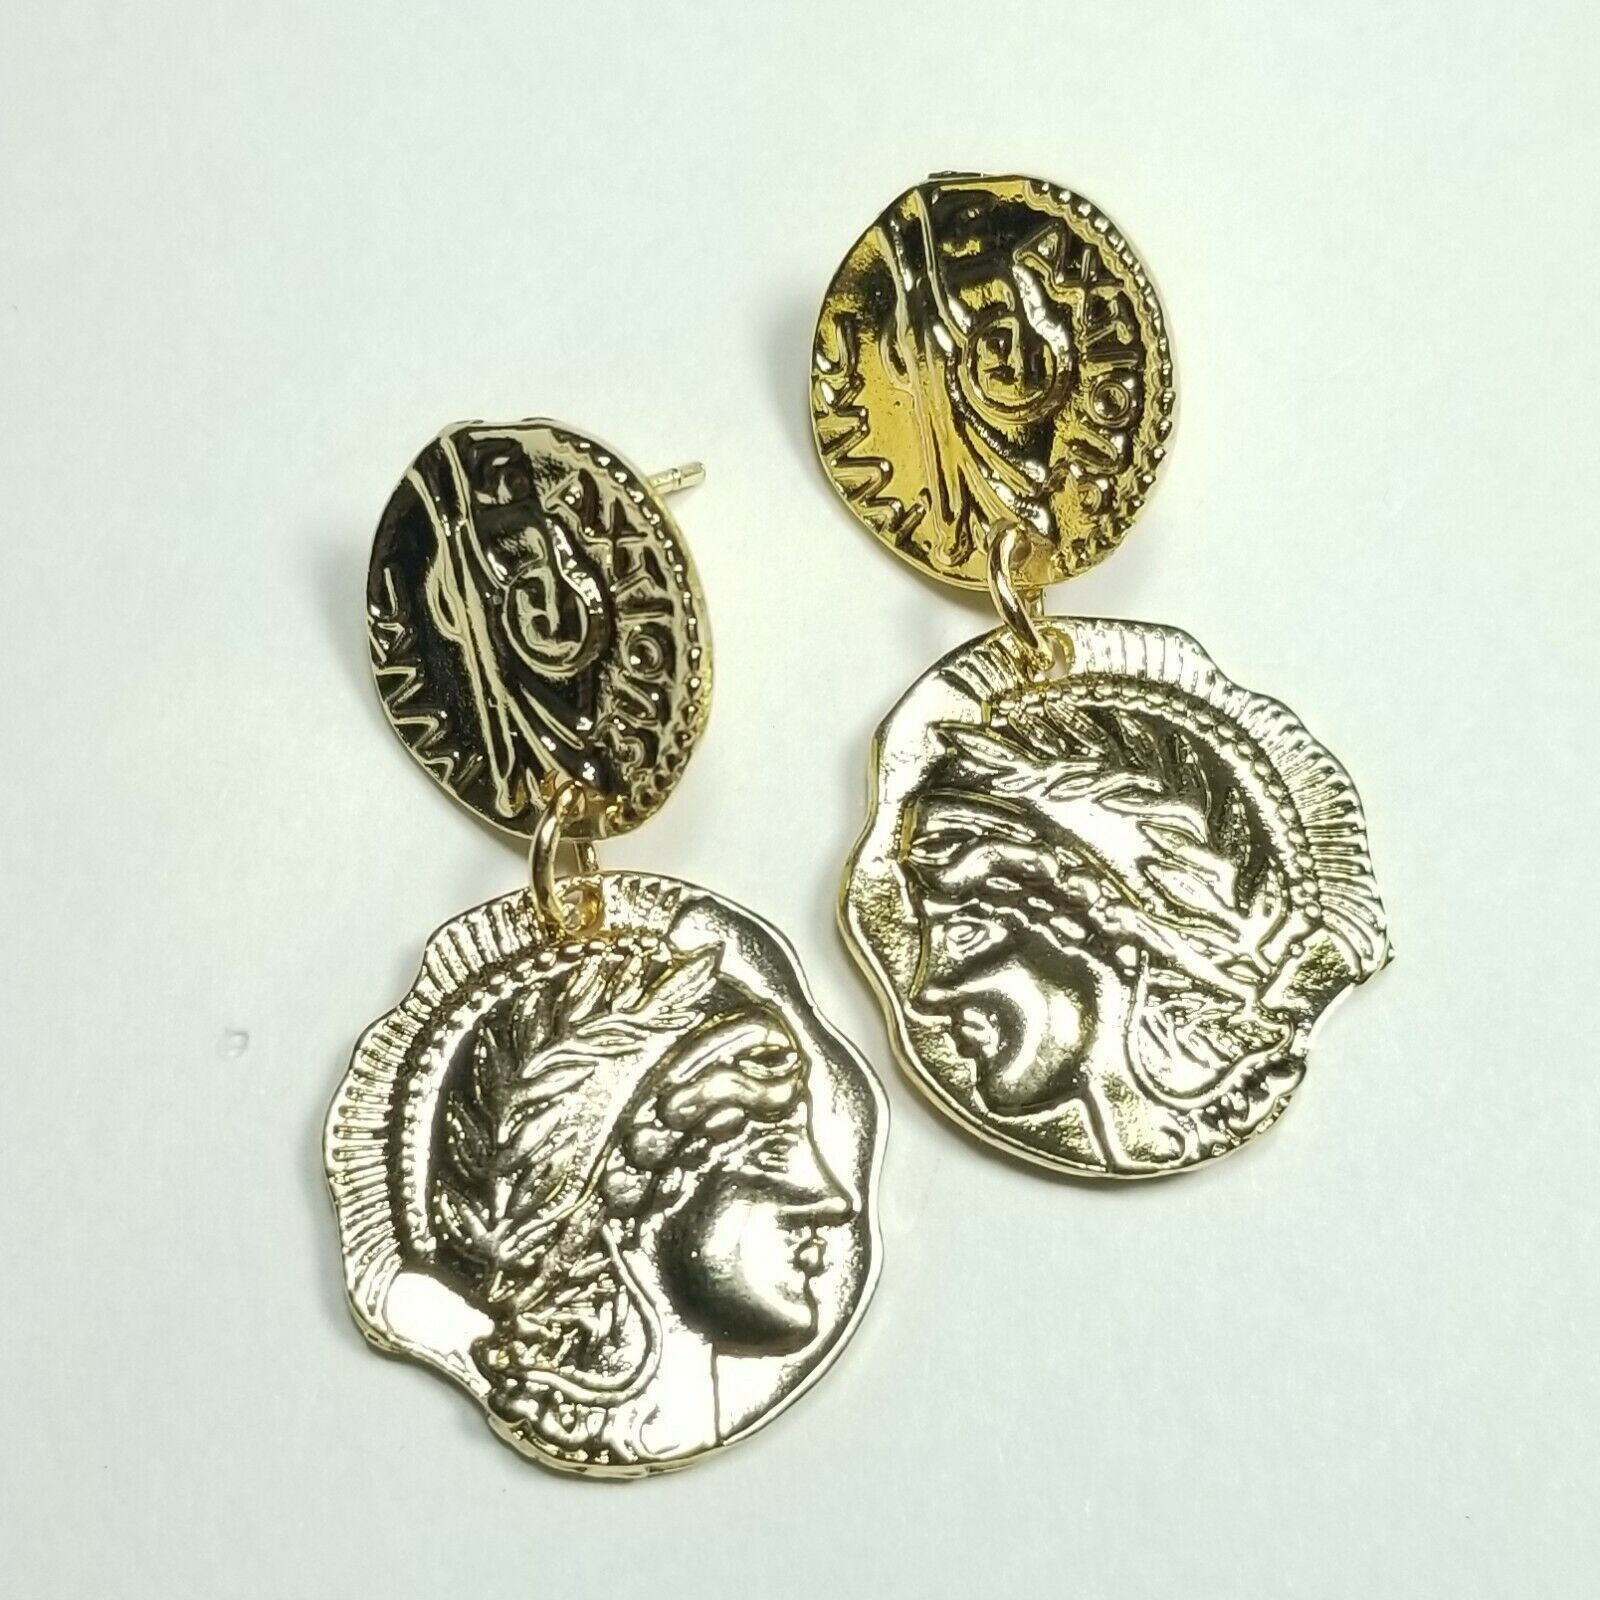 Primary image for E0058 Gold Colored Metal Circle Embossed Roman Coin Design Drop Dangle Earrings